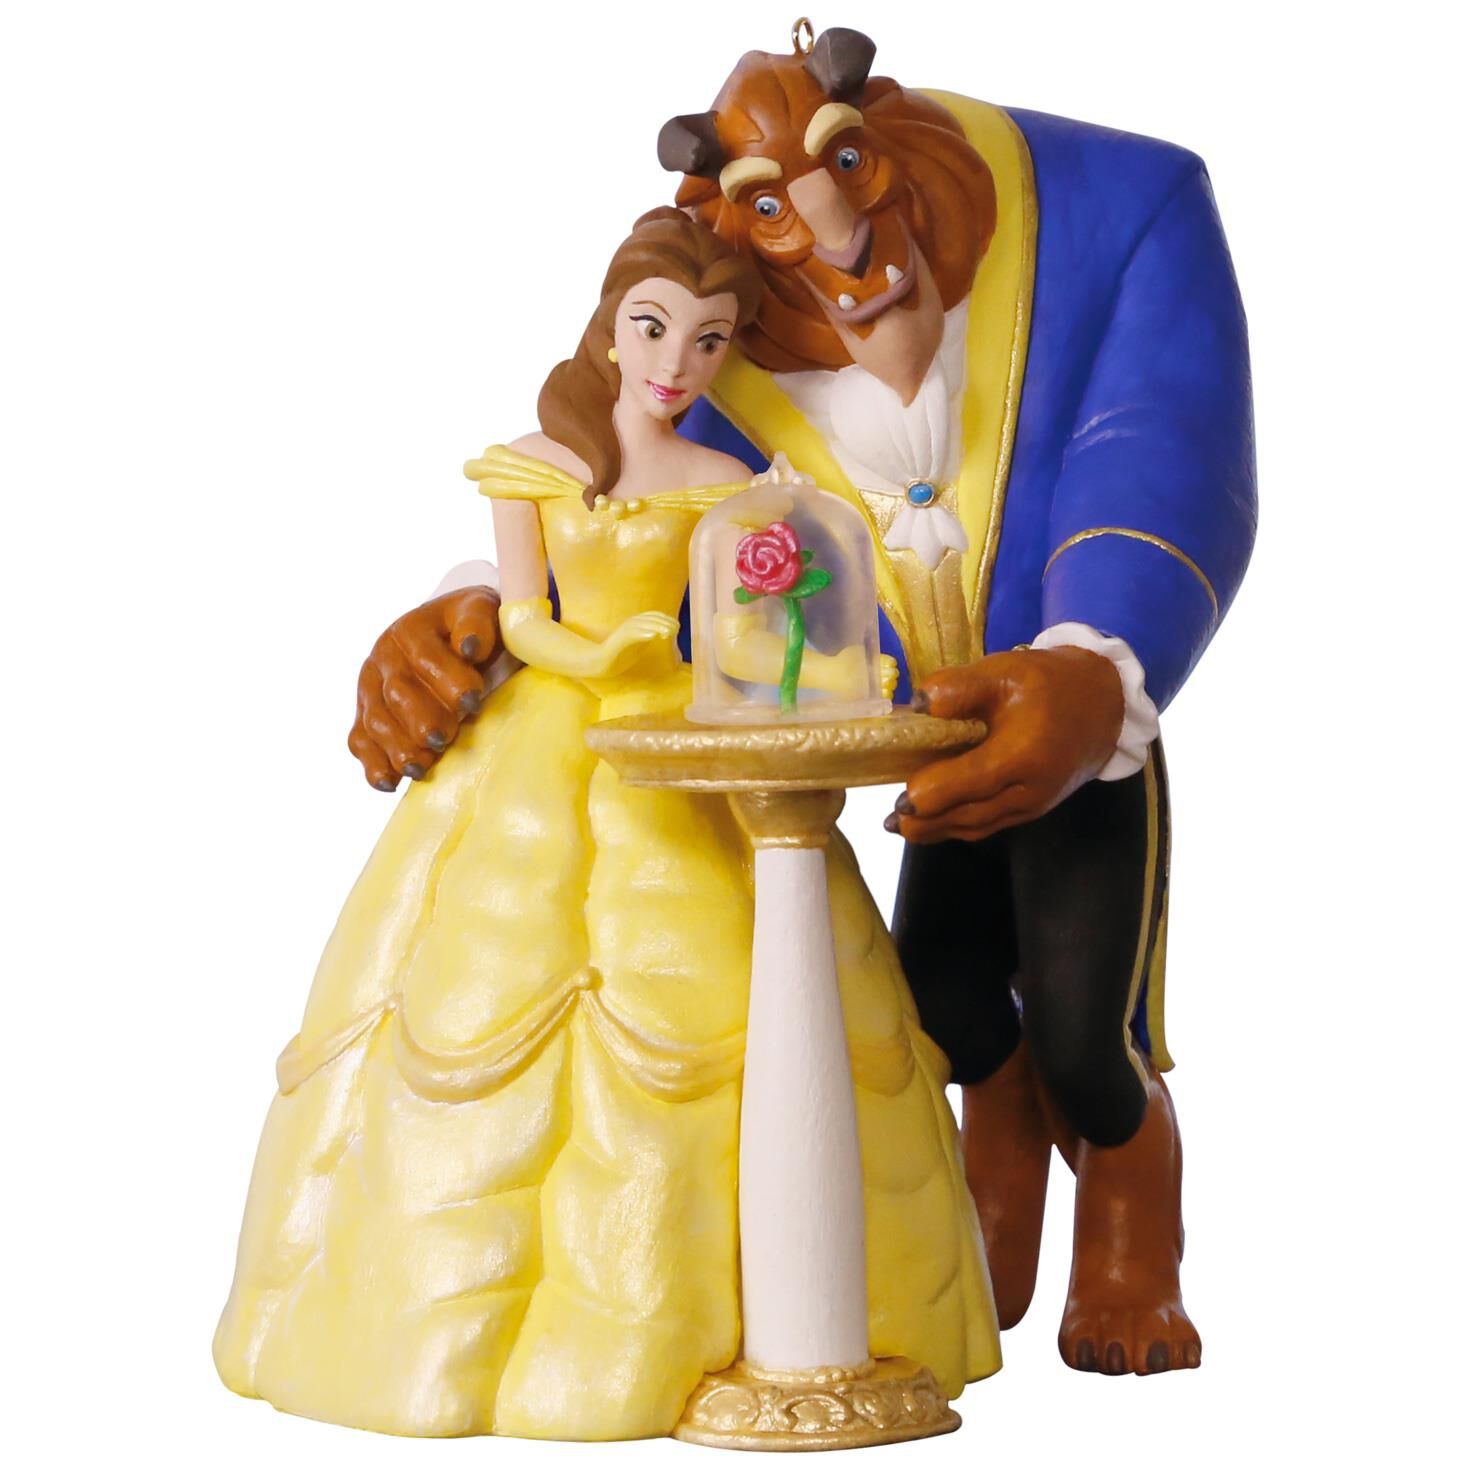 Disney Beauty And The Beast Tale As Old Time Ornament With Light Music Keepsake Ornaments Hallmark